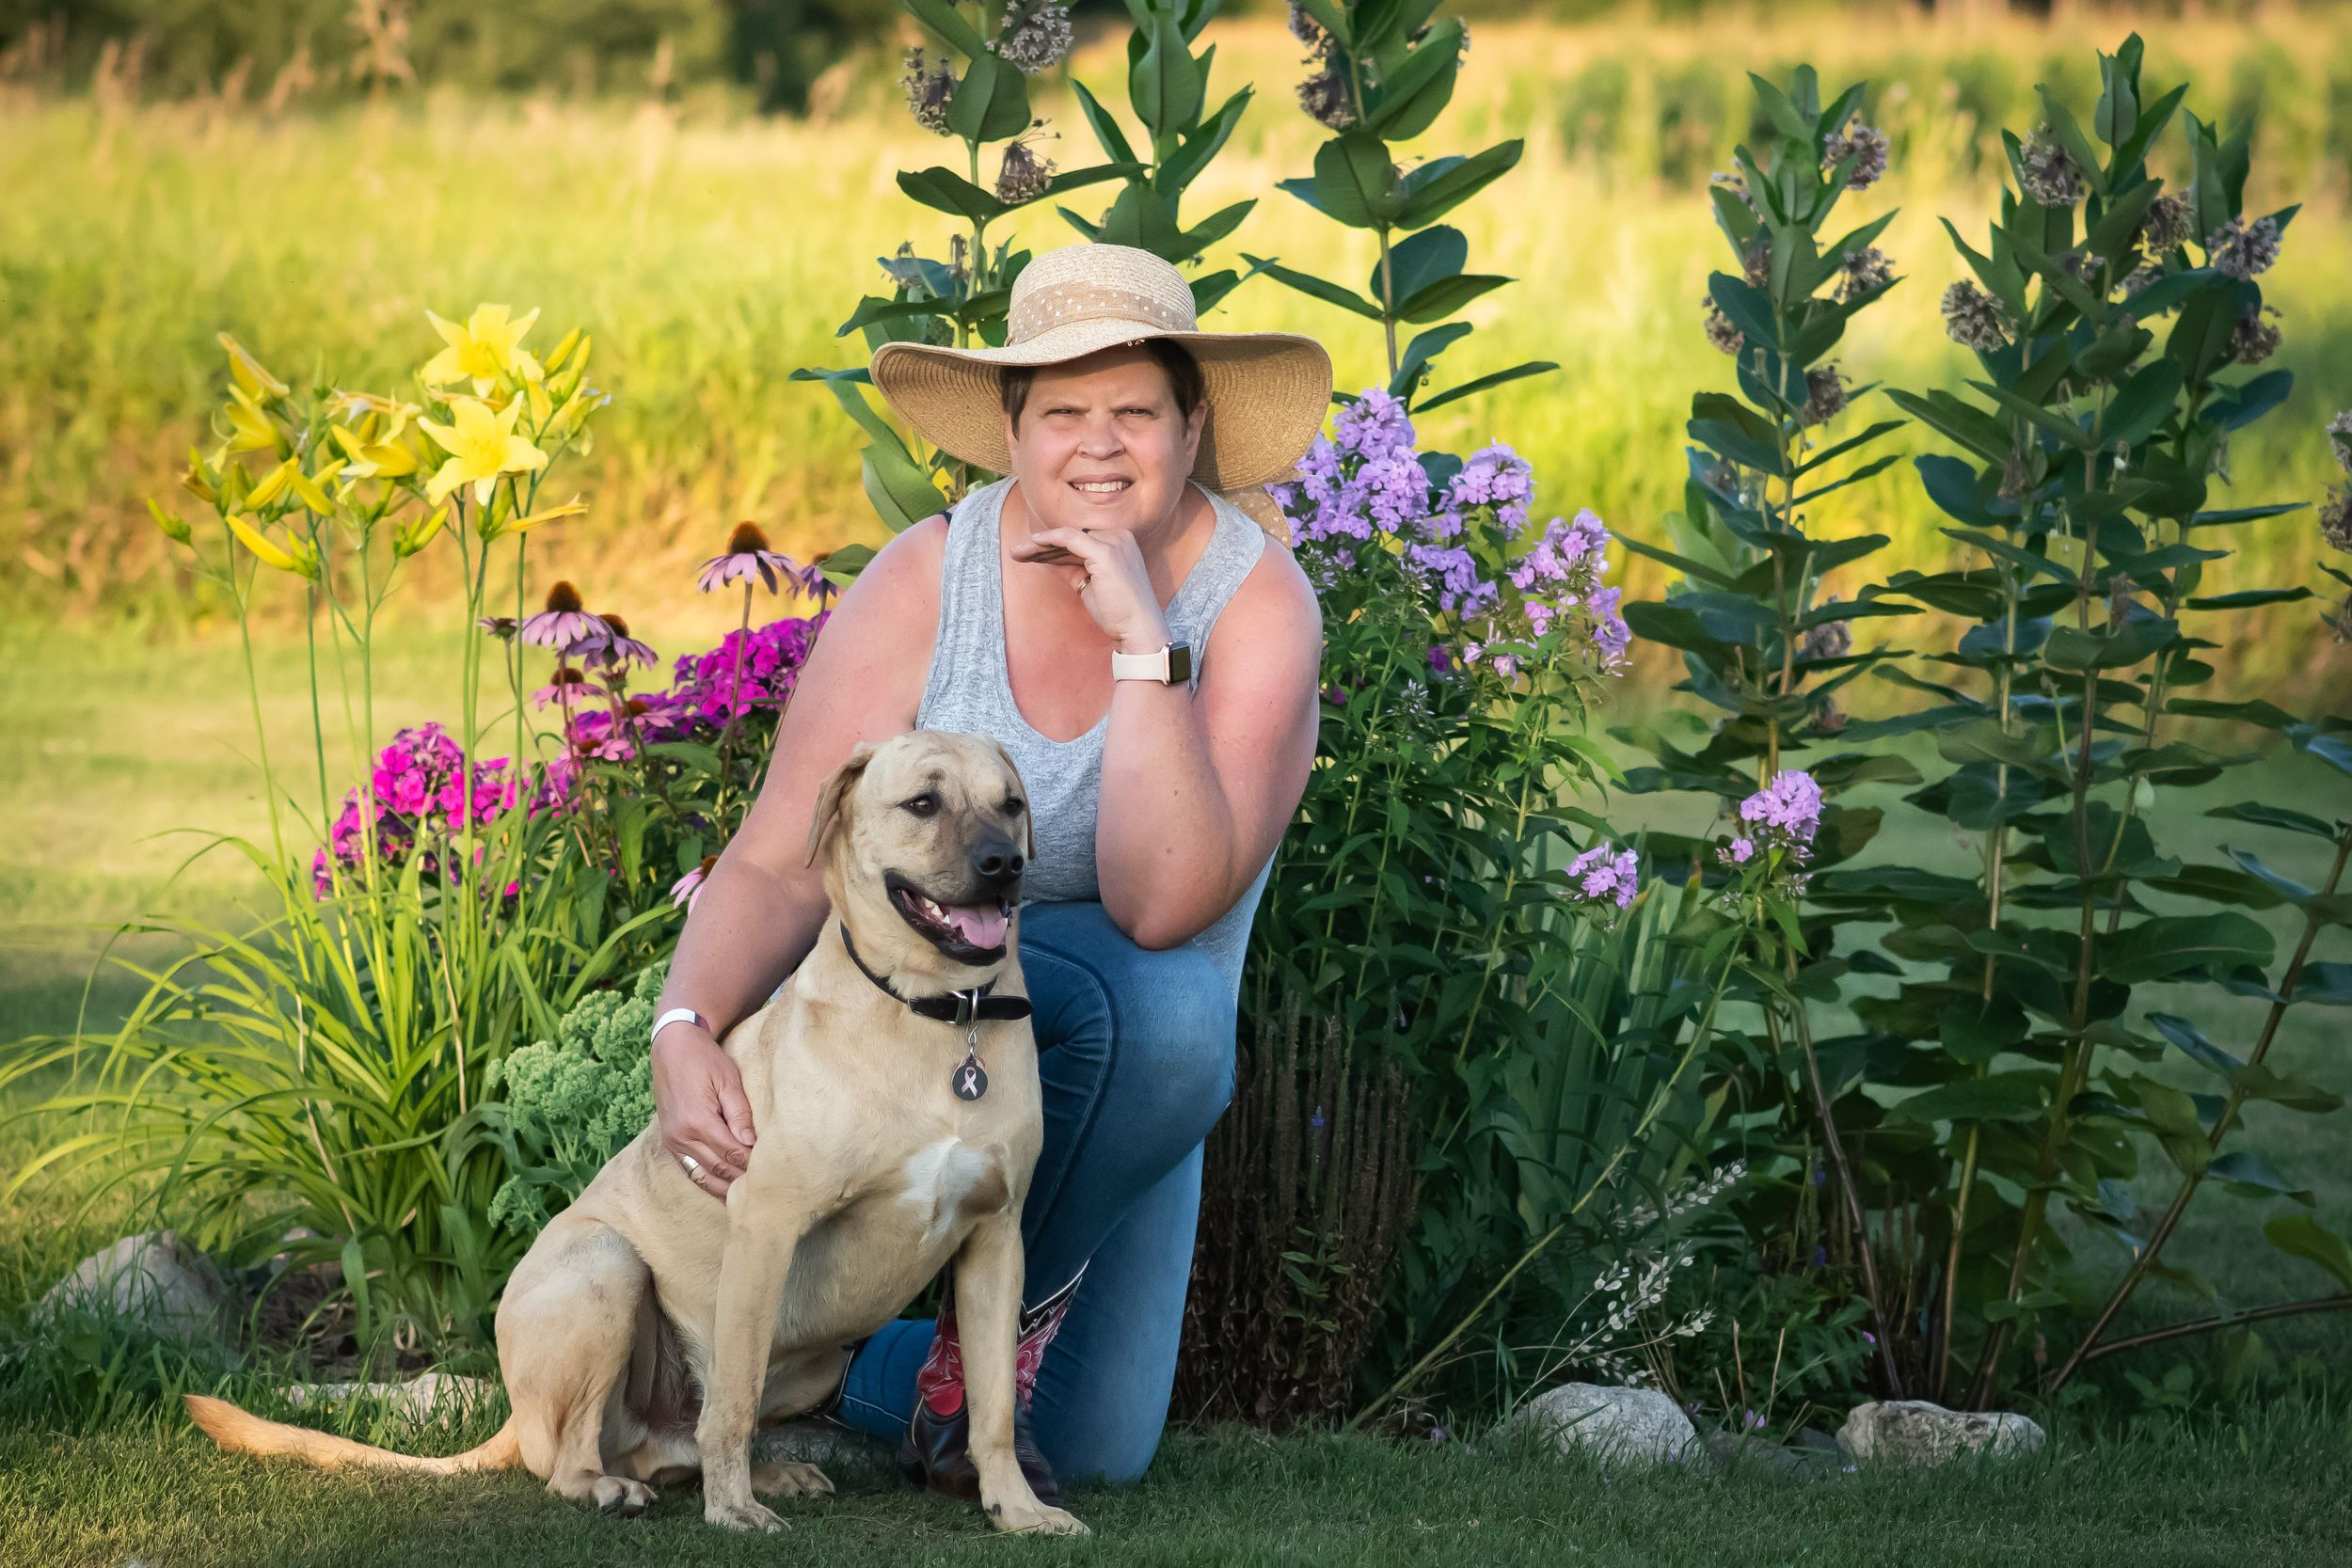 Photographer Myra J Horner kneeling in front of her flower garden with her beloved rescue pup Harley by her side.